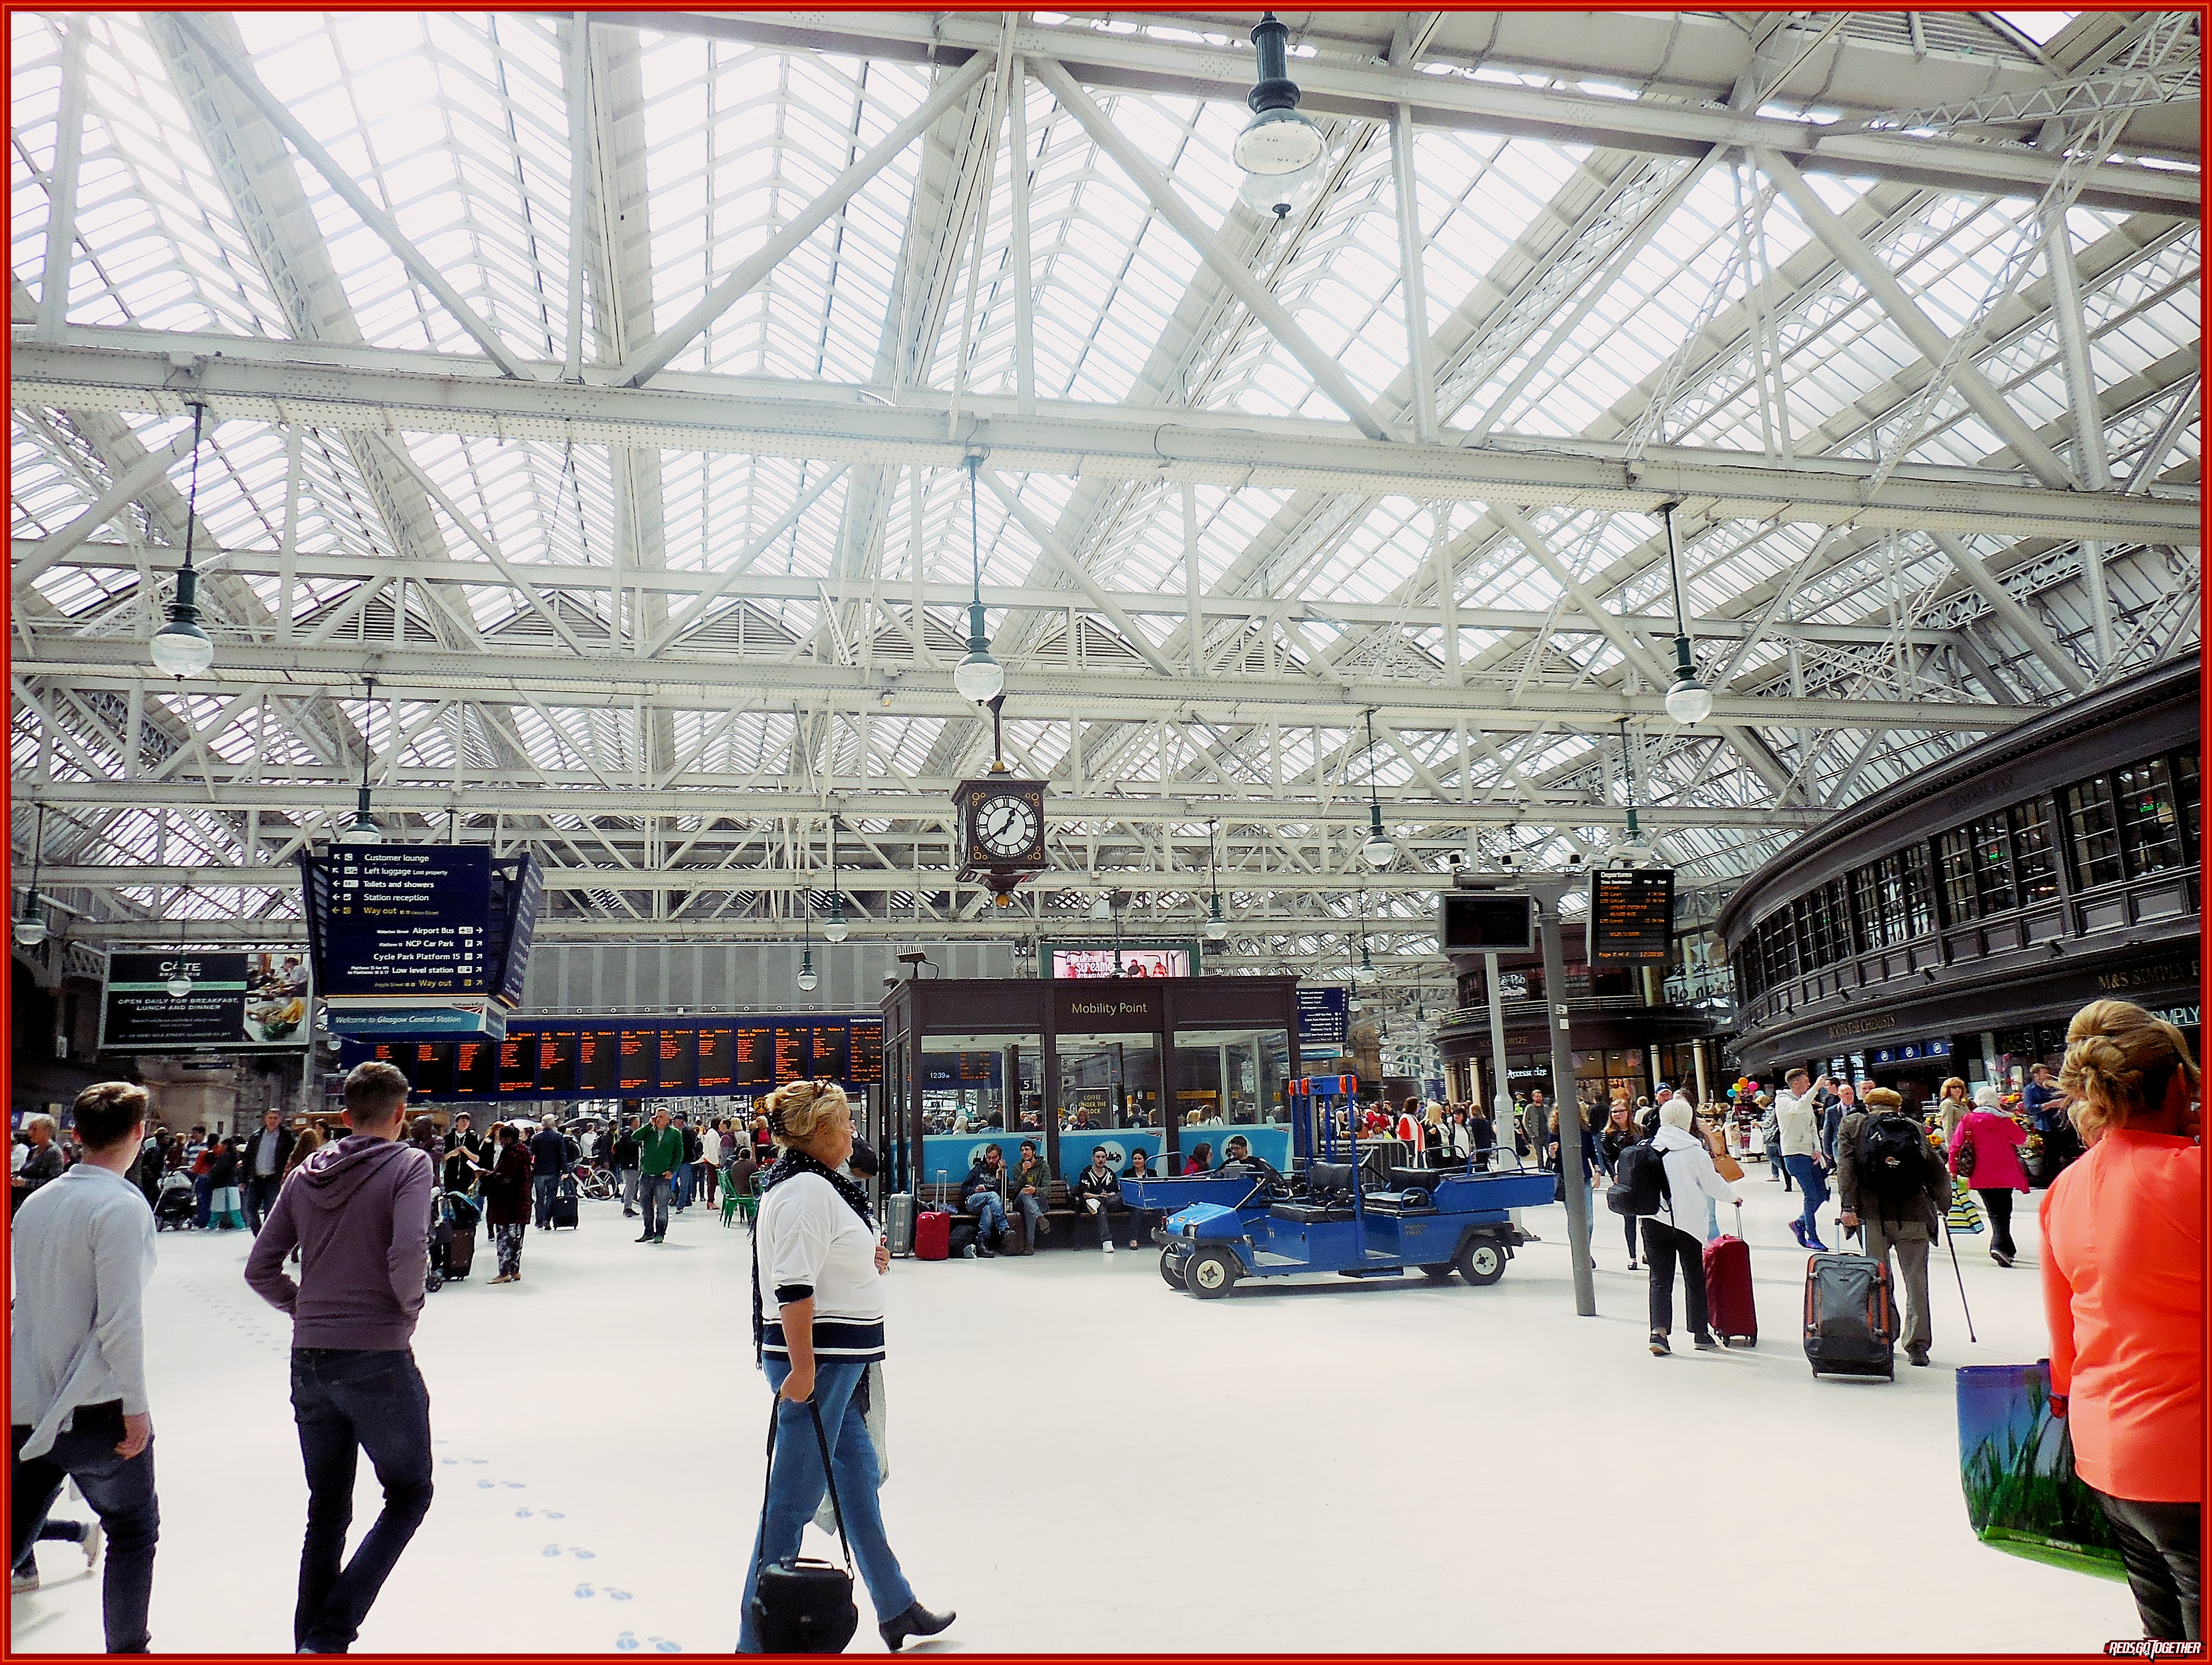 This is the main train station in Glasgow.  So many hearts have been broken under that clock.  Before cell phones we had to have a meeting place for dates.